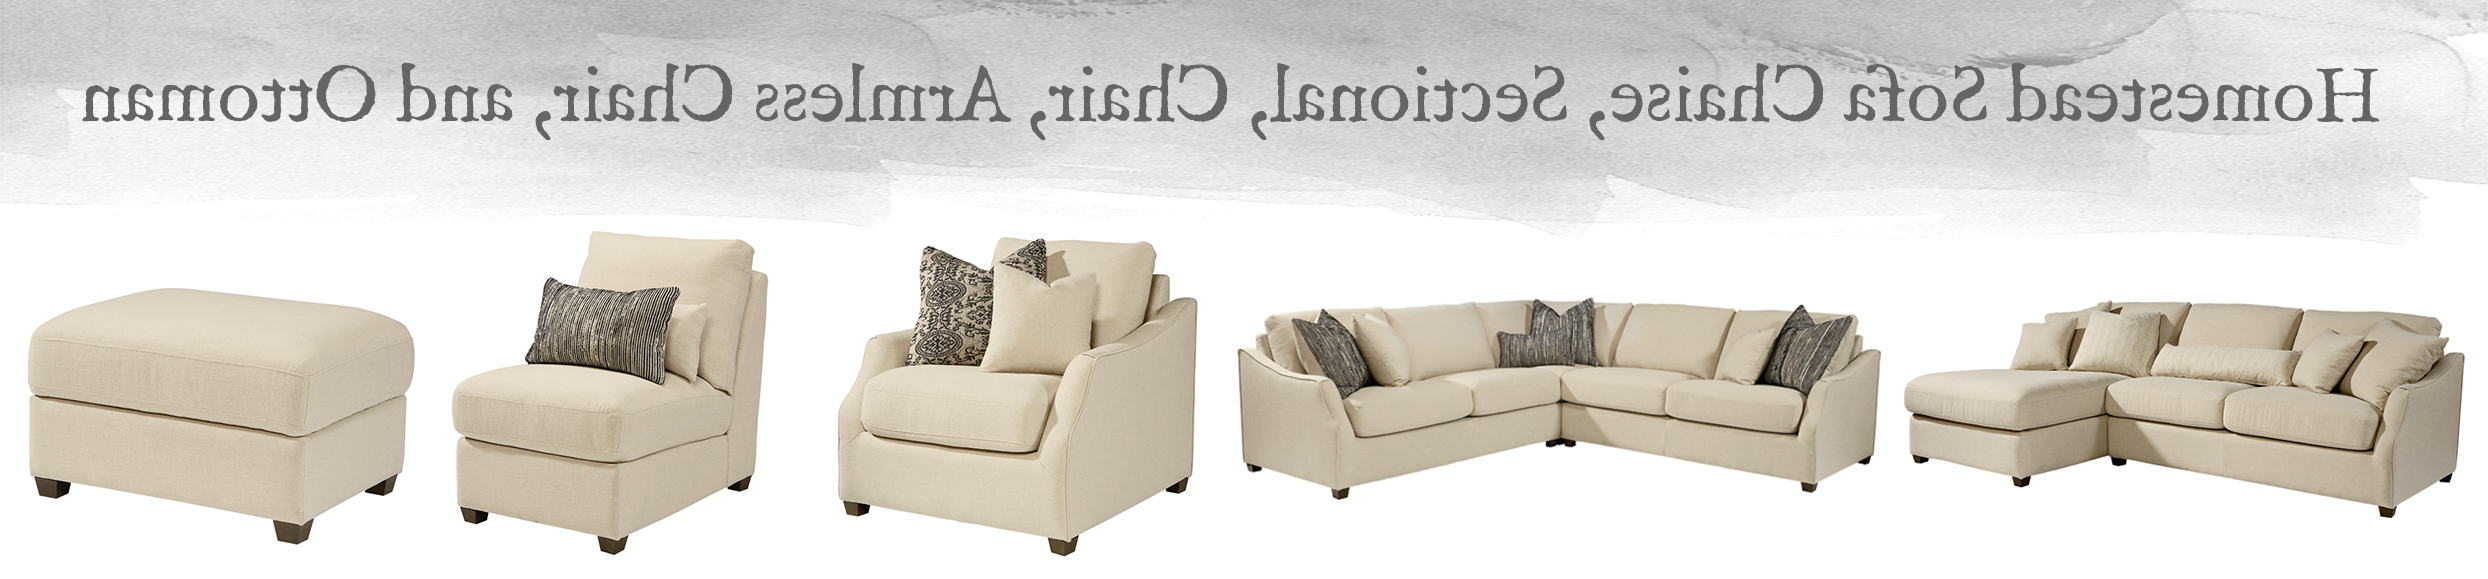 Magnolia Home Preview: Upholstered Living Room Collection (View 9 of 20)